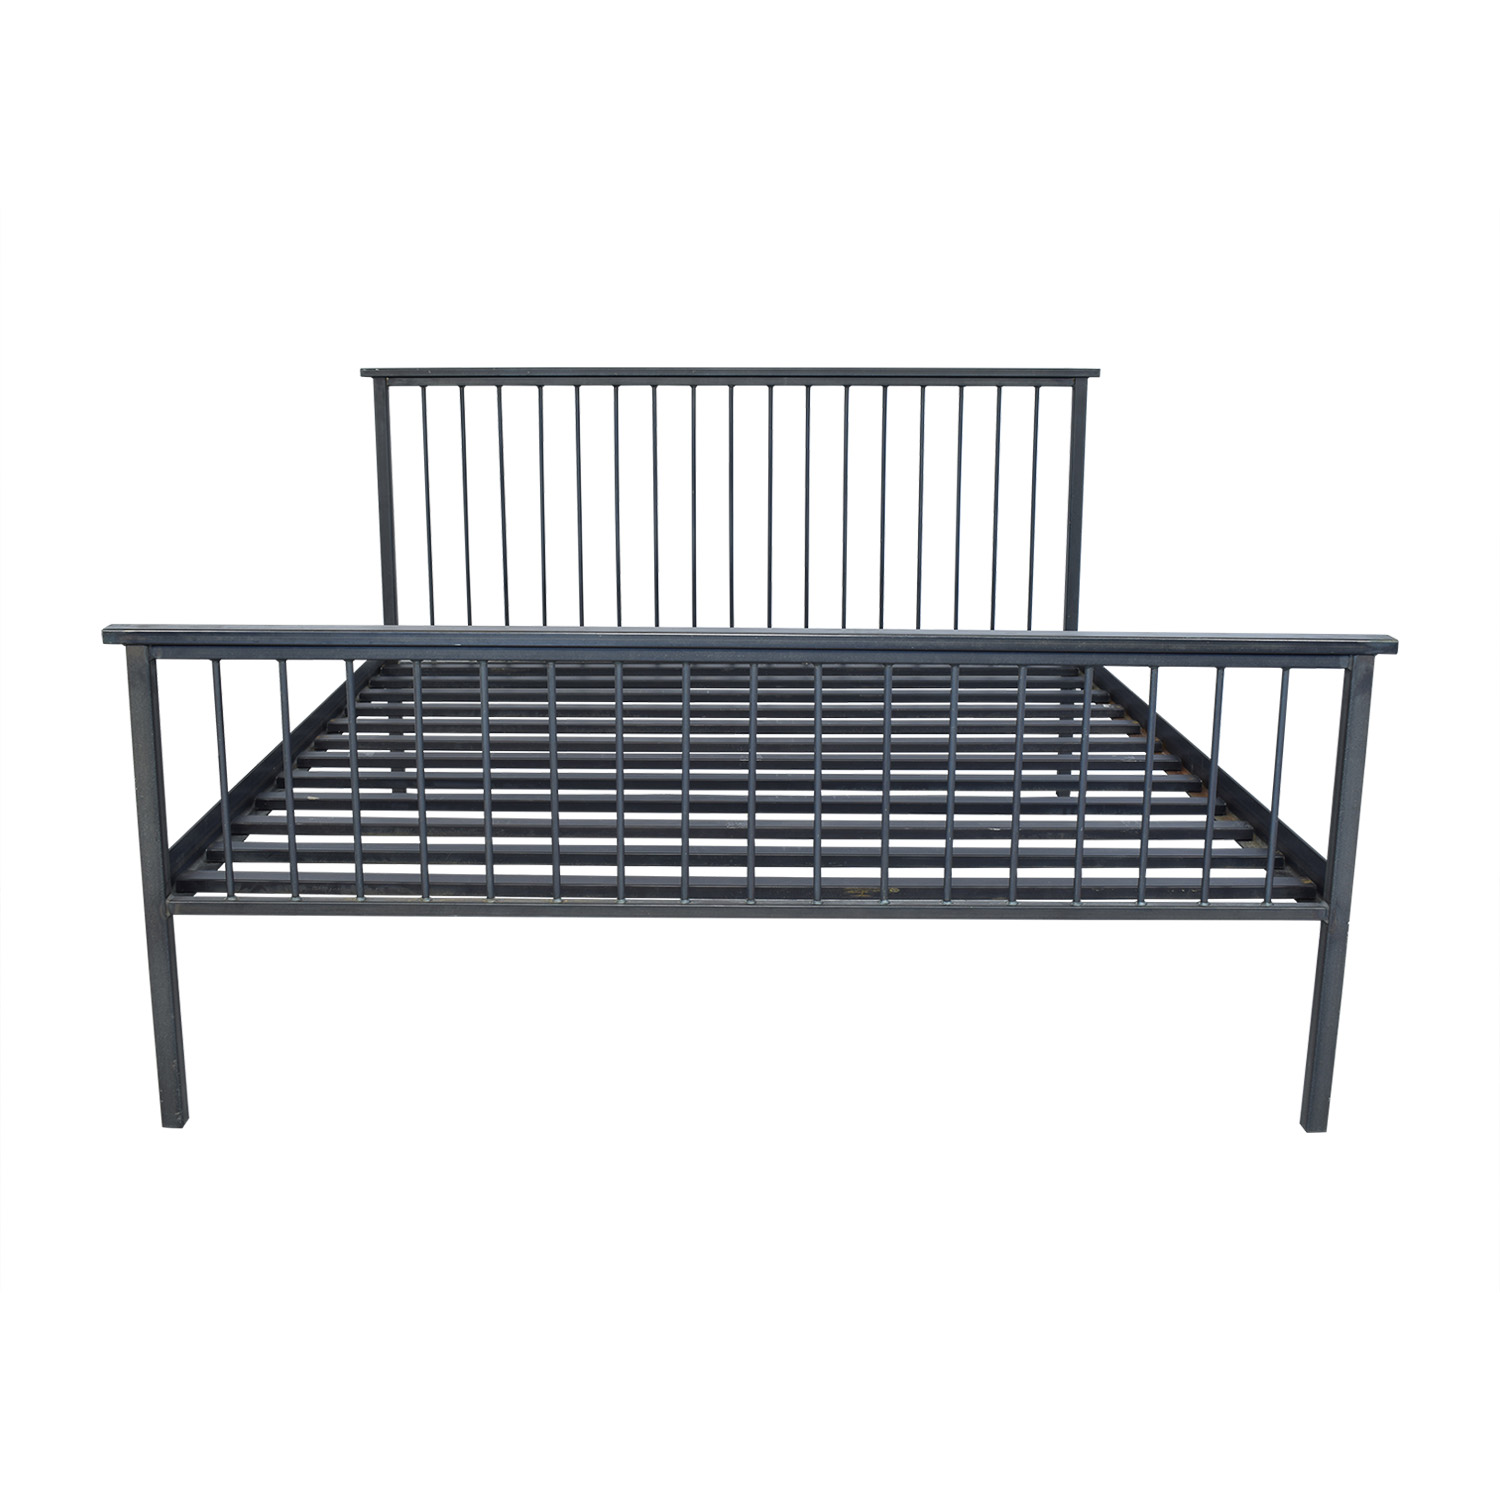 Room & Board Room & Board Mackintosh High Footboard King Bed pa